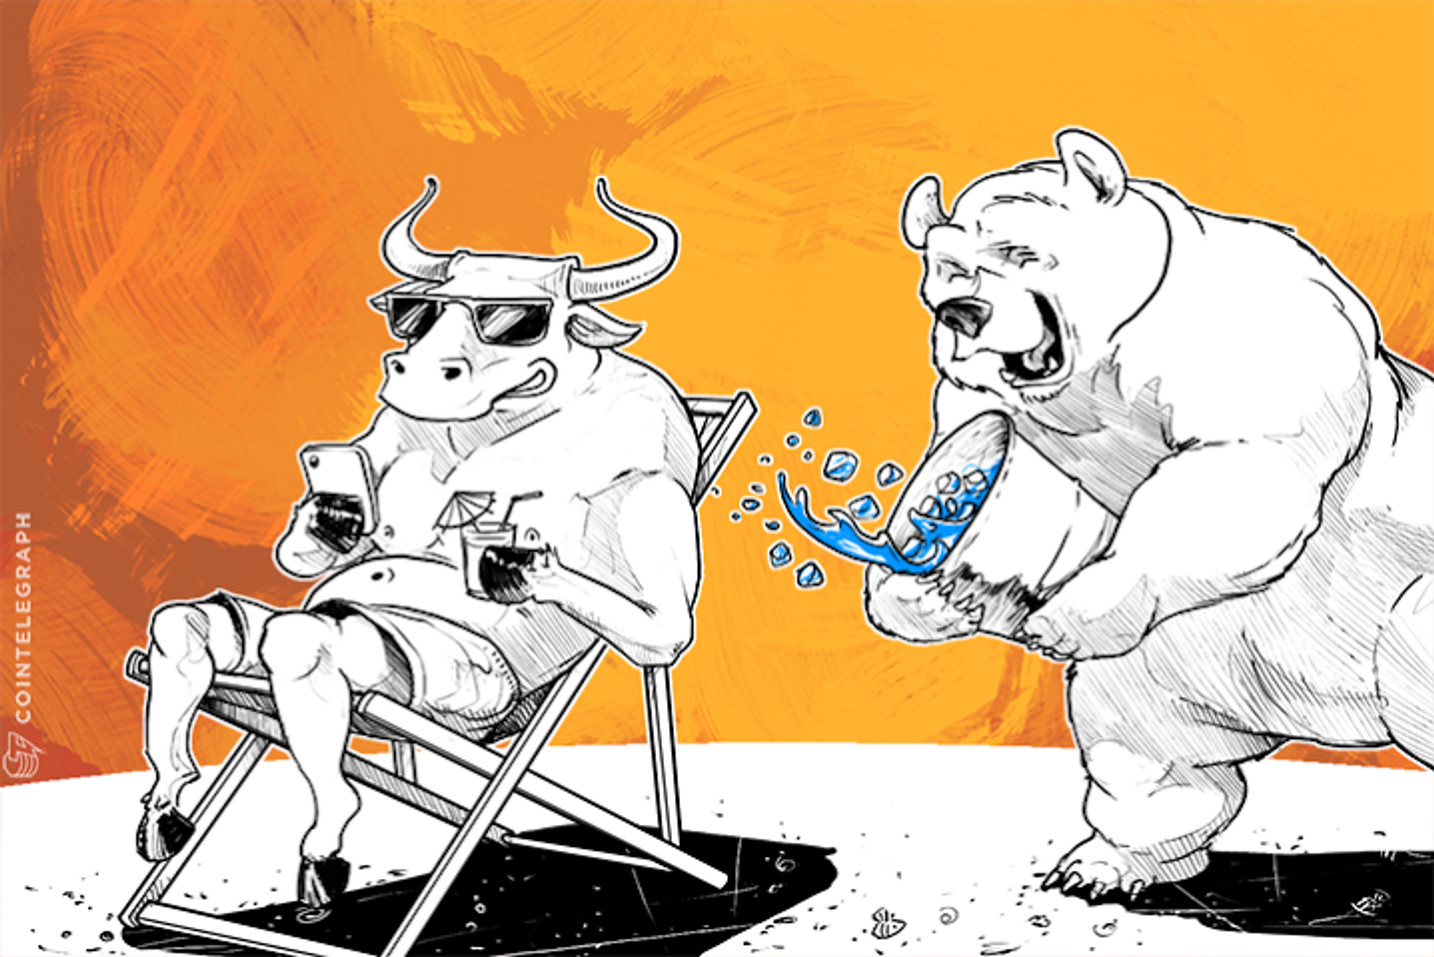 Bitcoin Price Analysis: Bulls' Summer Vacation or Bear Trap? (Week of July 20th)